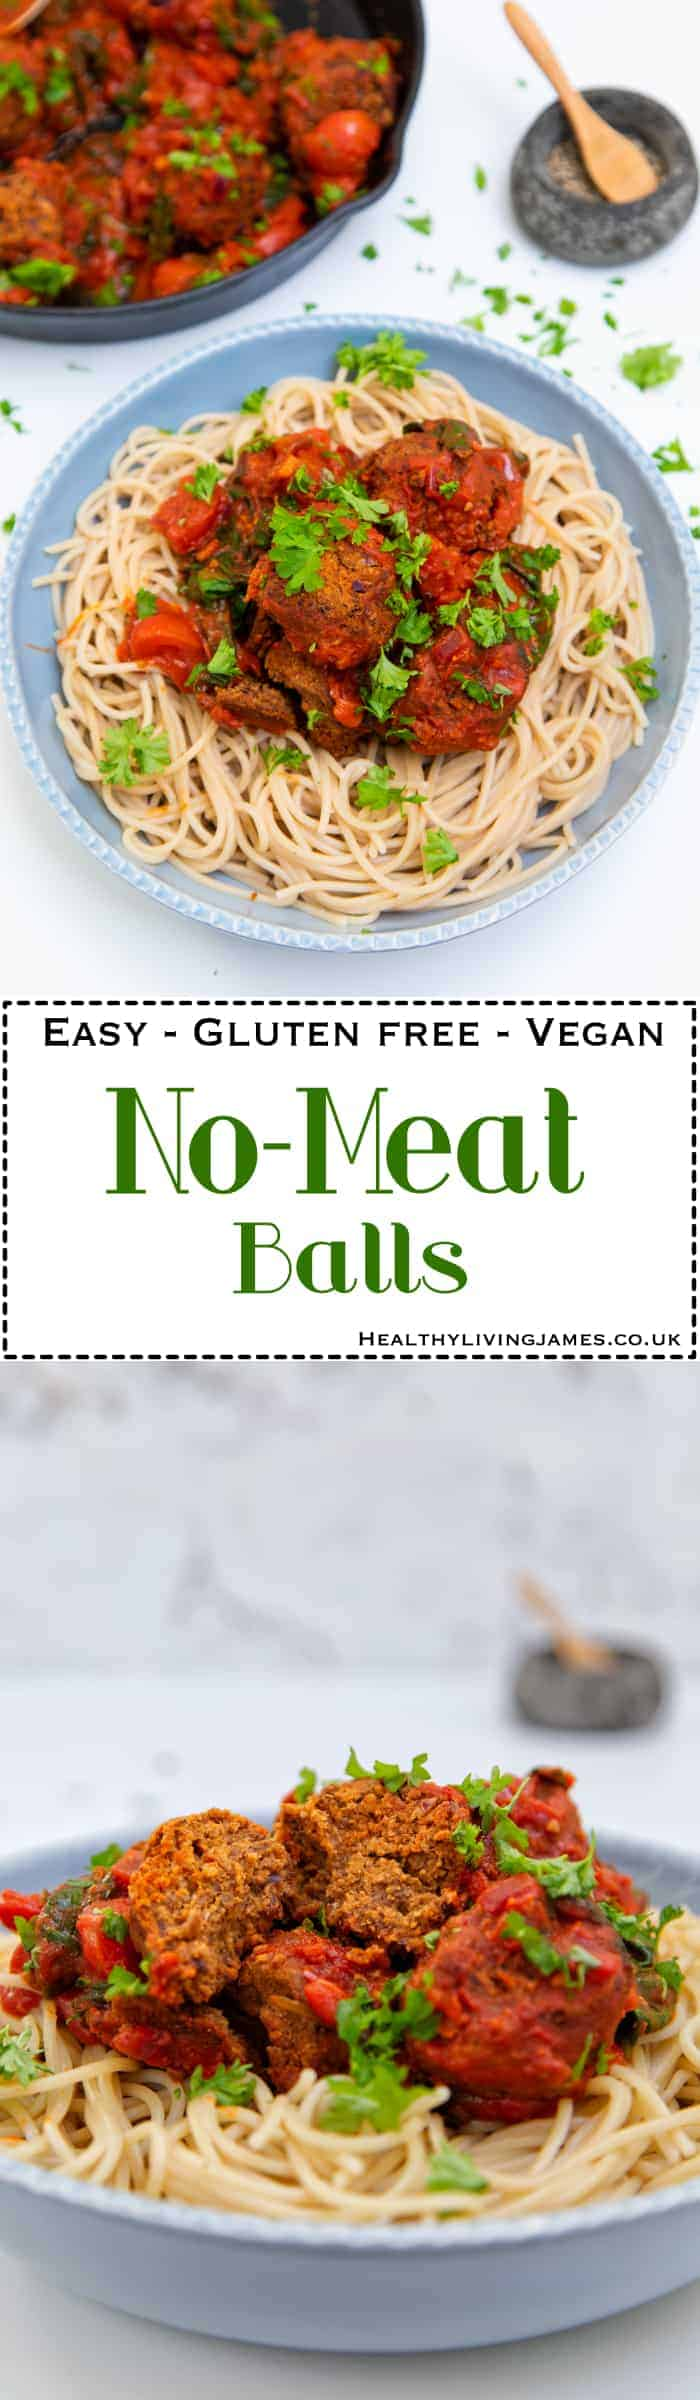 No-Meat Balls Pinterest